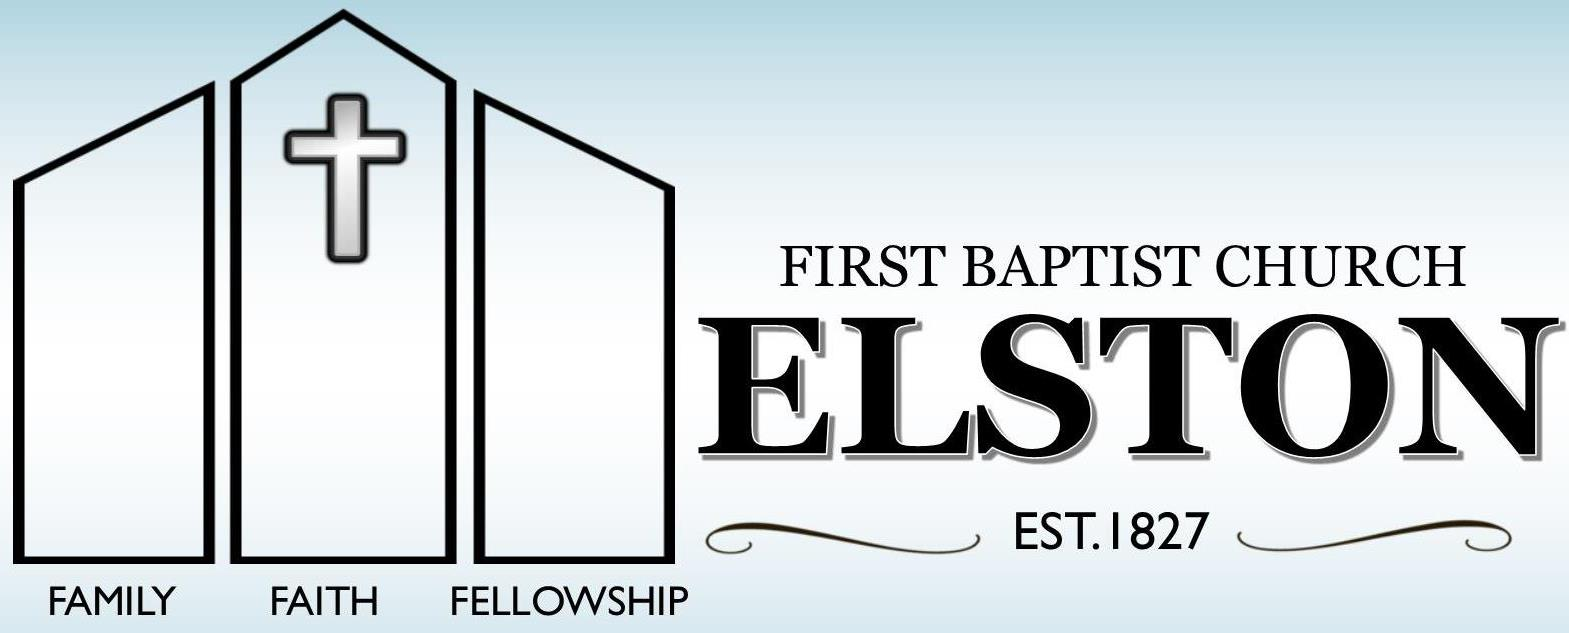 First Baptist Church of Elston